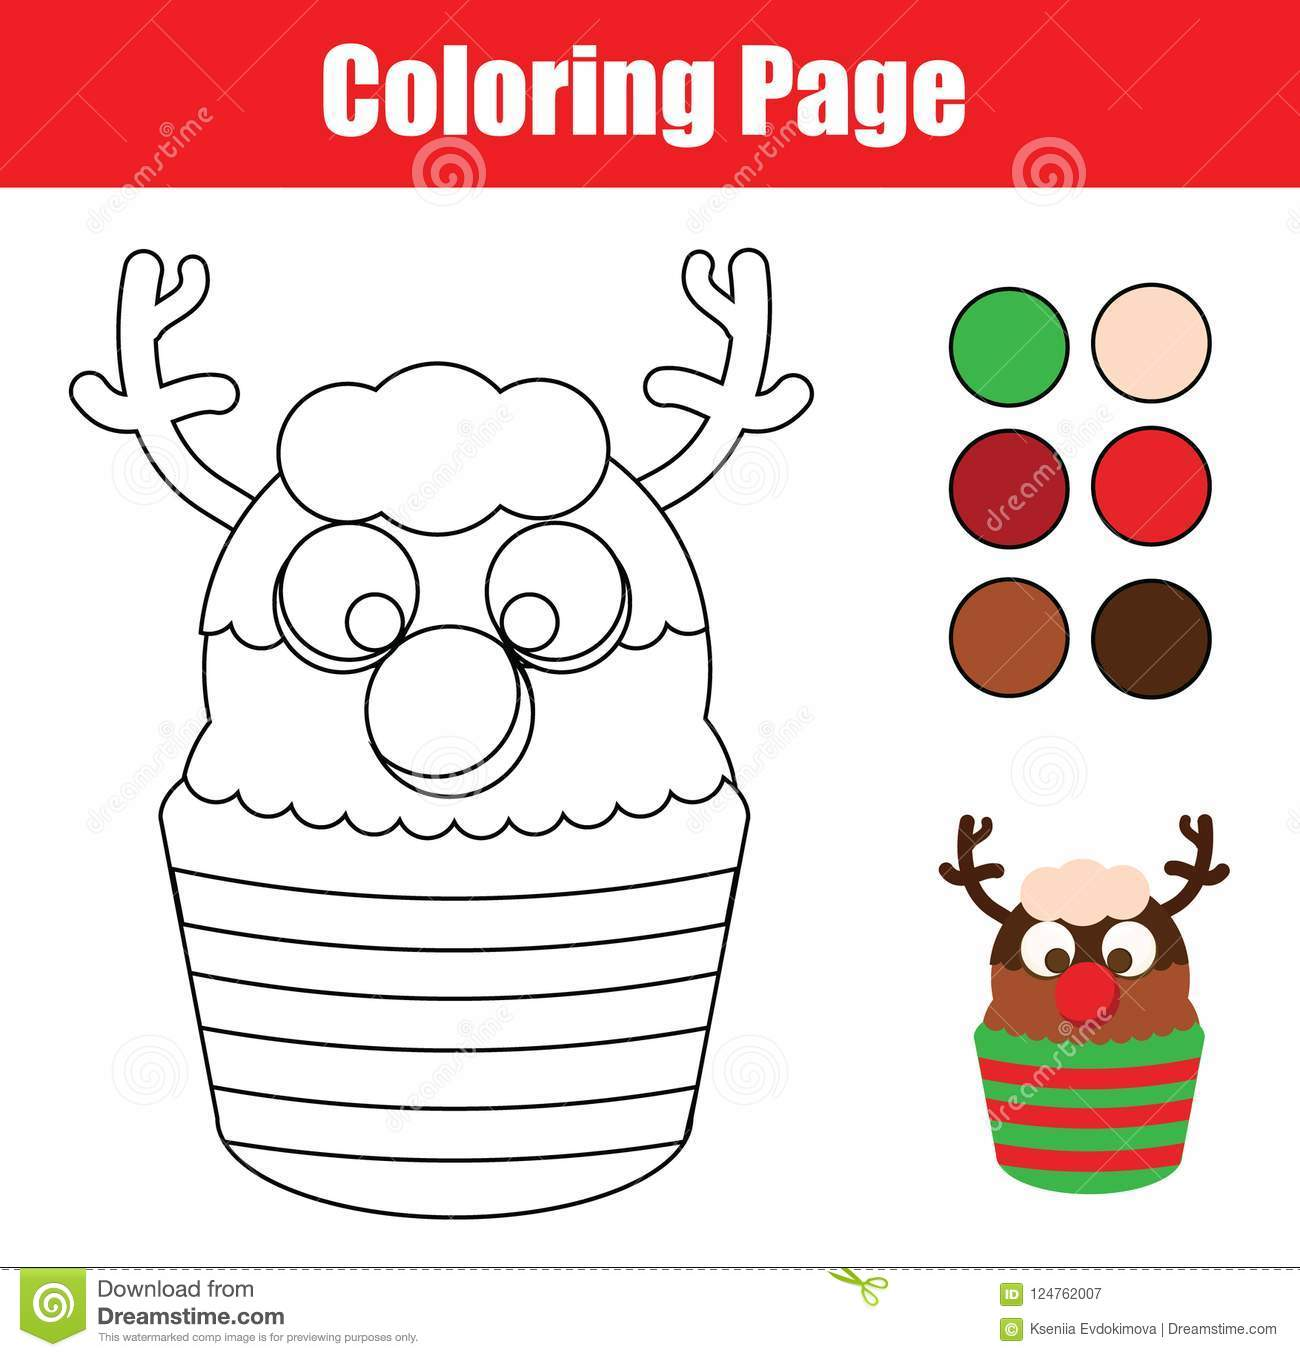 Coloring Page. Educational Children Game. Color Christmas ...